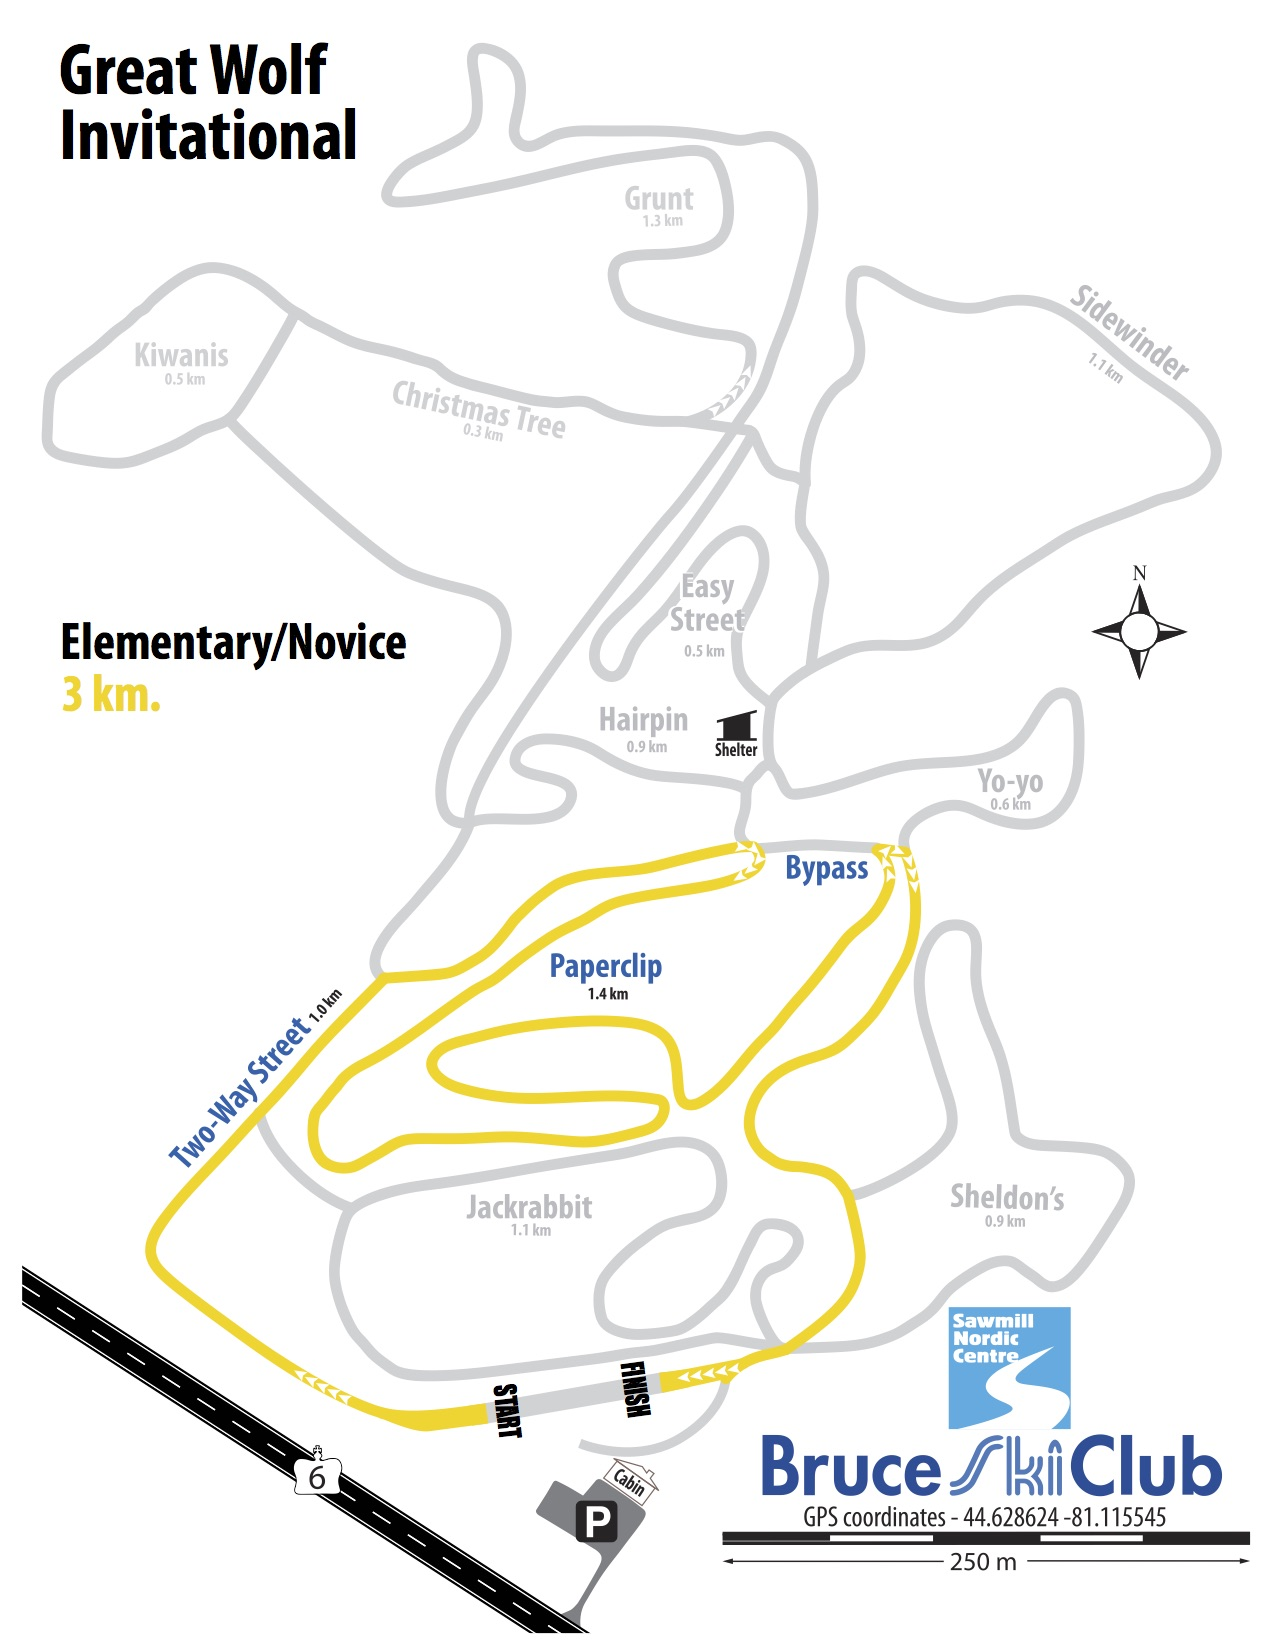 Great Wolf Invitational Cross-Country Ski Race, Hepworth, Ontario - Map: Elementary Novice